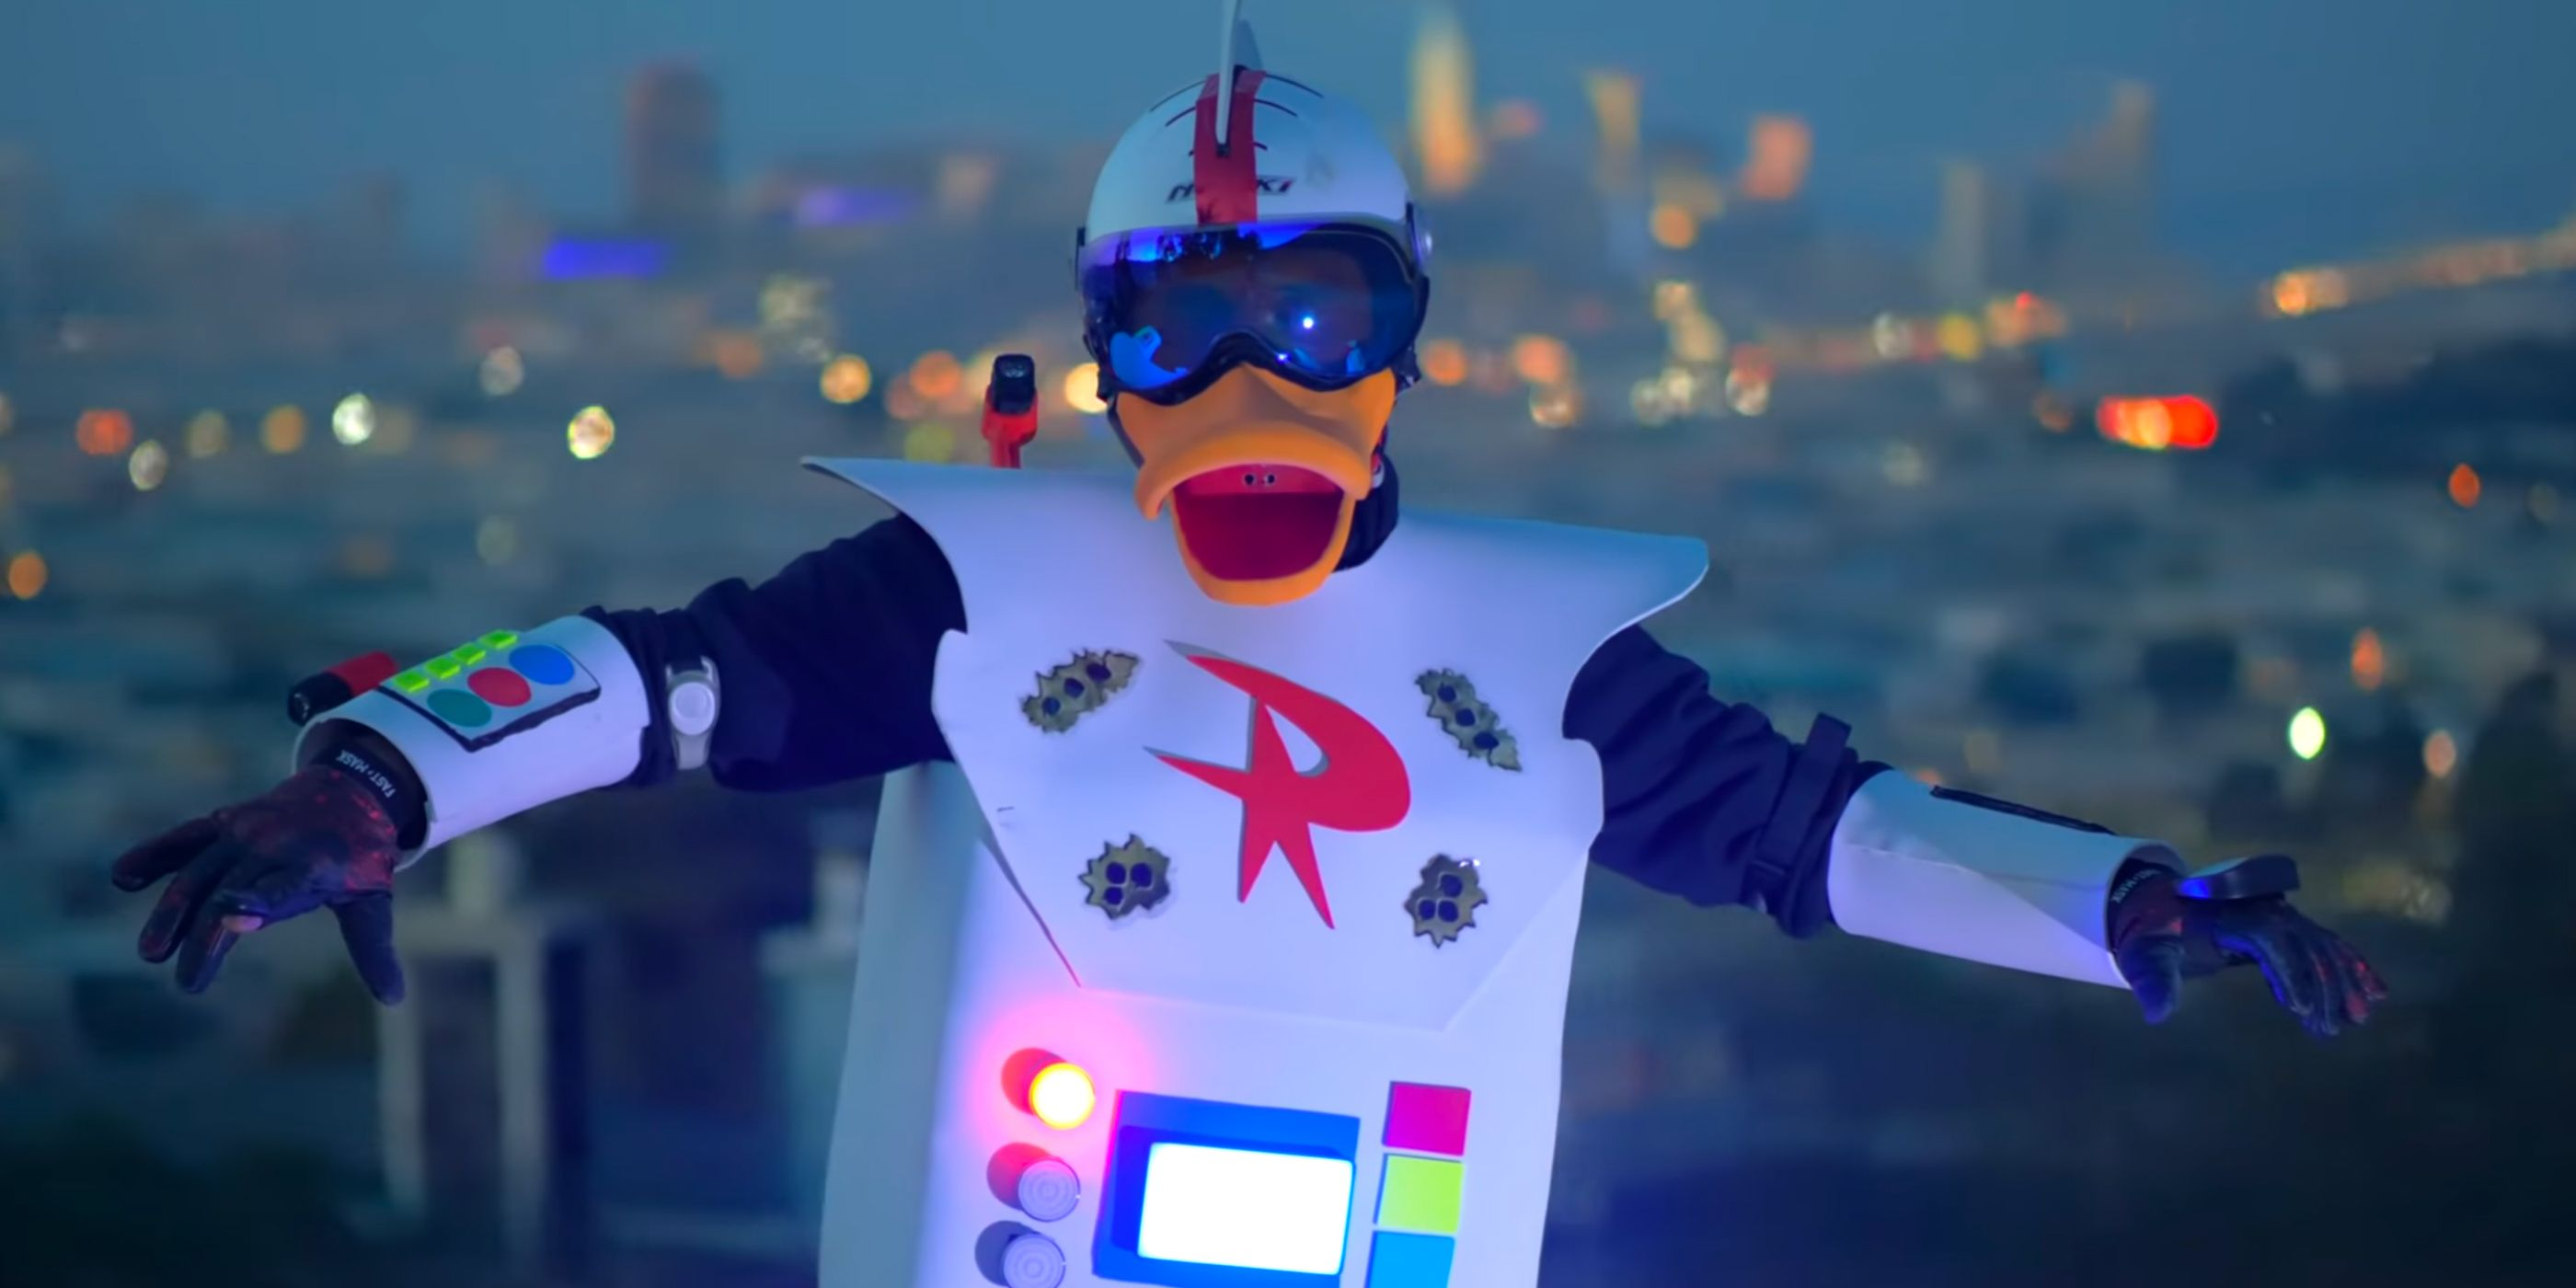 Ducktales Cosplay Brings Gizmoduck To Life In Mindblowing Video Using the superpowered suit, crackshell was tasked with protecting. ducktales cosplay brings gizmoduck to